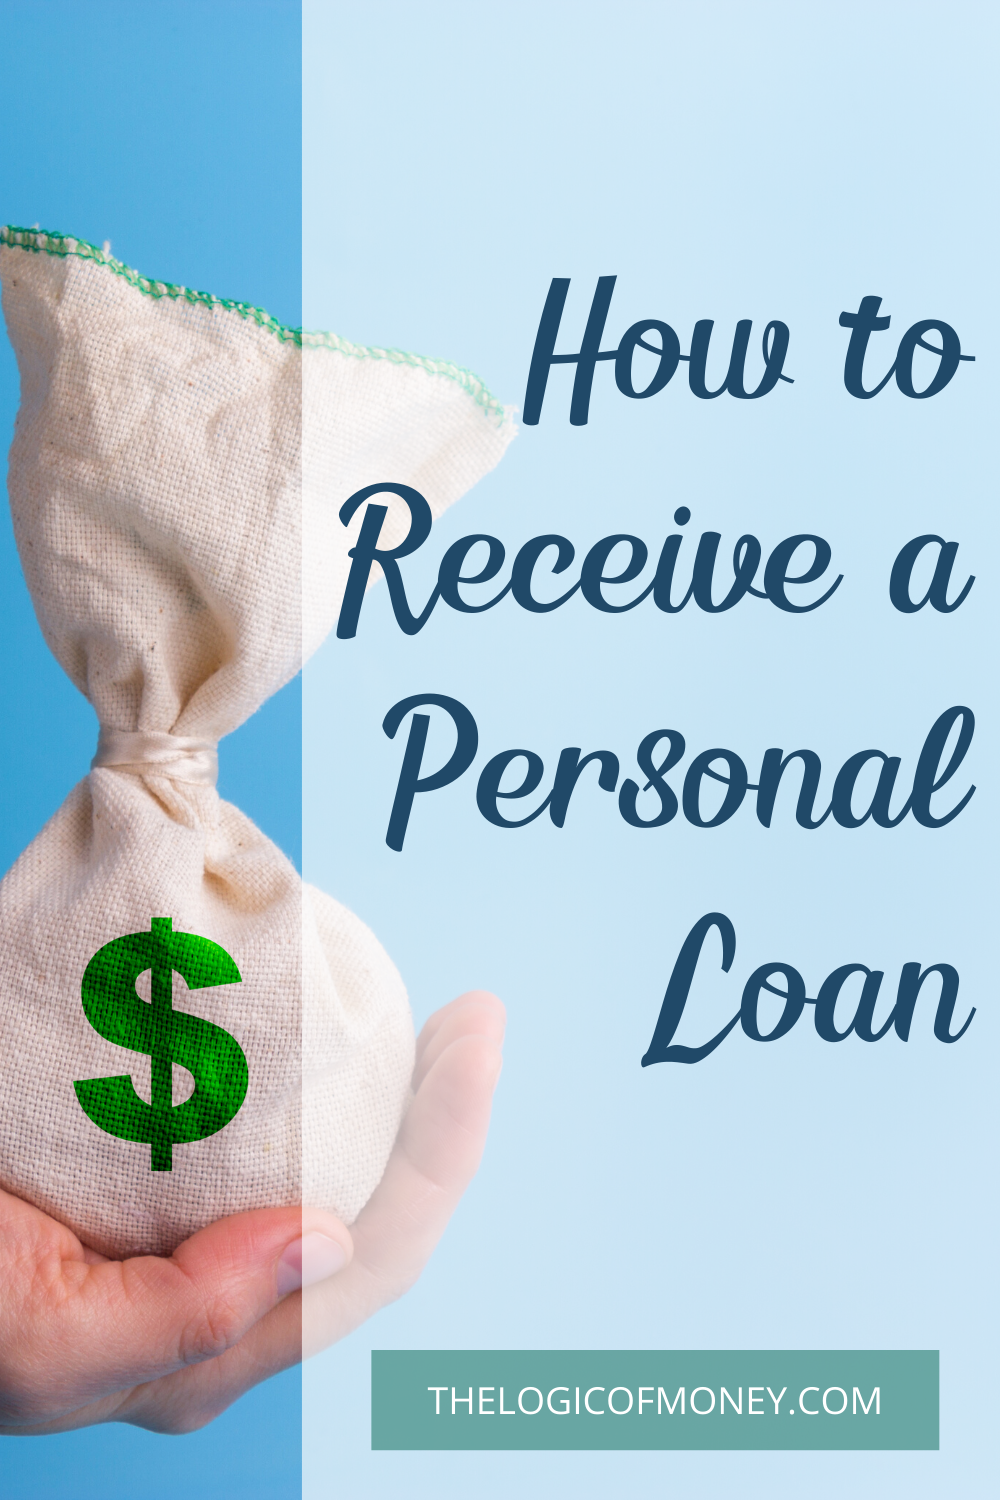 How To Get A Personal Loan In 2020 The Logic Of Money In 2020 Personal Loans Loan Making A Budget